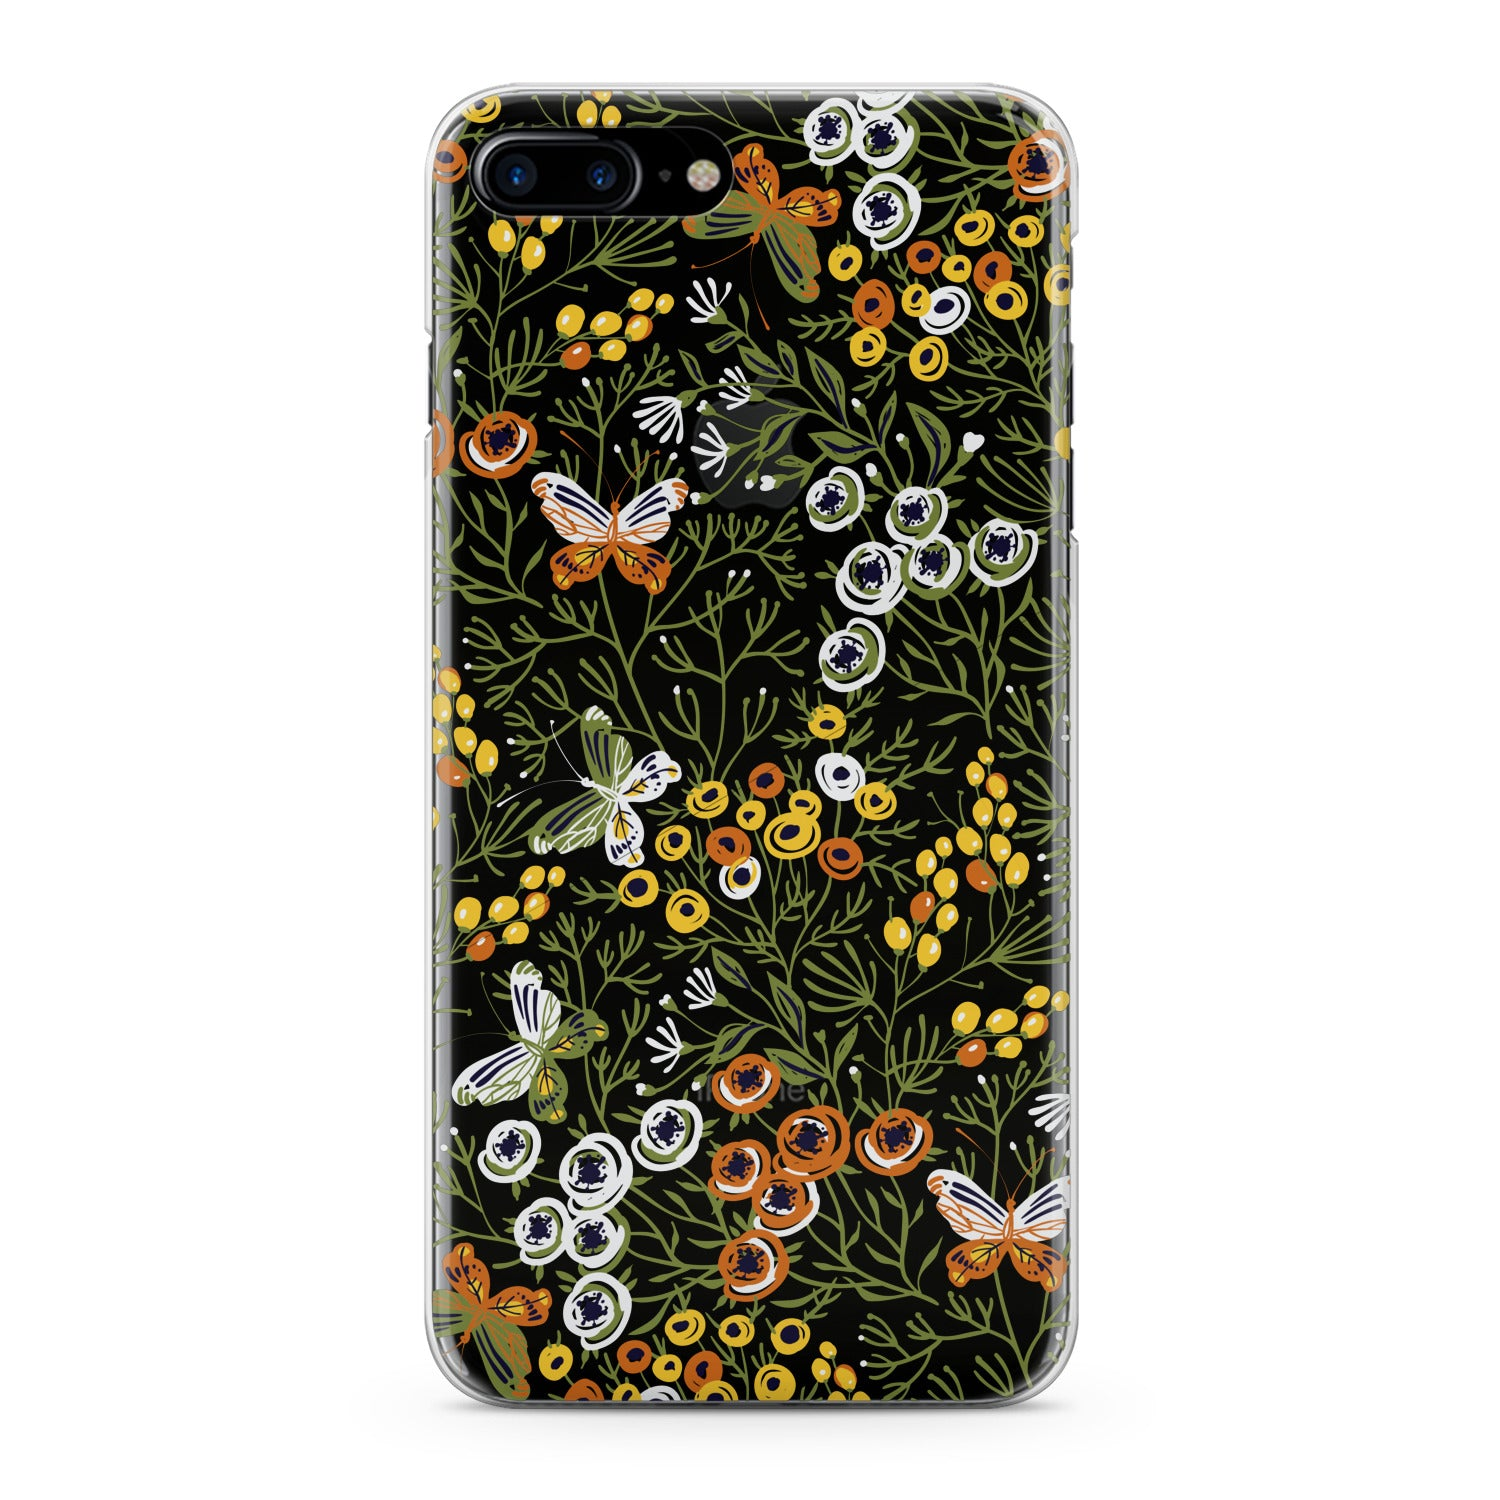 Lex Altern Wild Flowers Phone Case for your iPhone & Android phone.